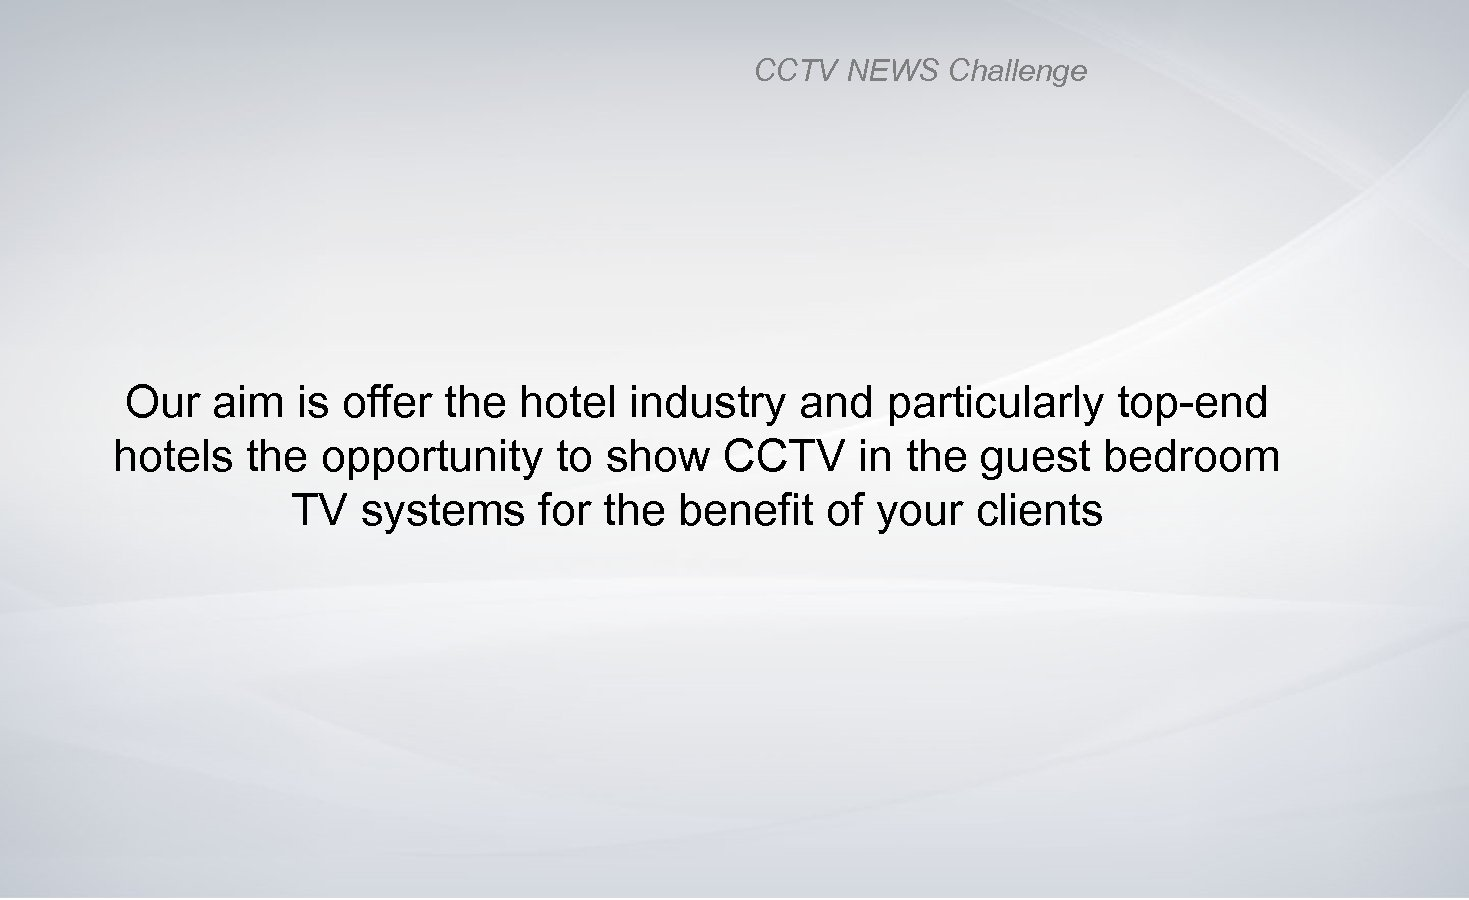 CCTV NEWS Challenge Our aim is offer the hotel industry and particularly top-end hotels